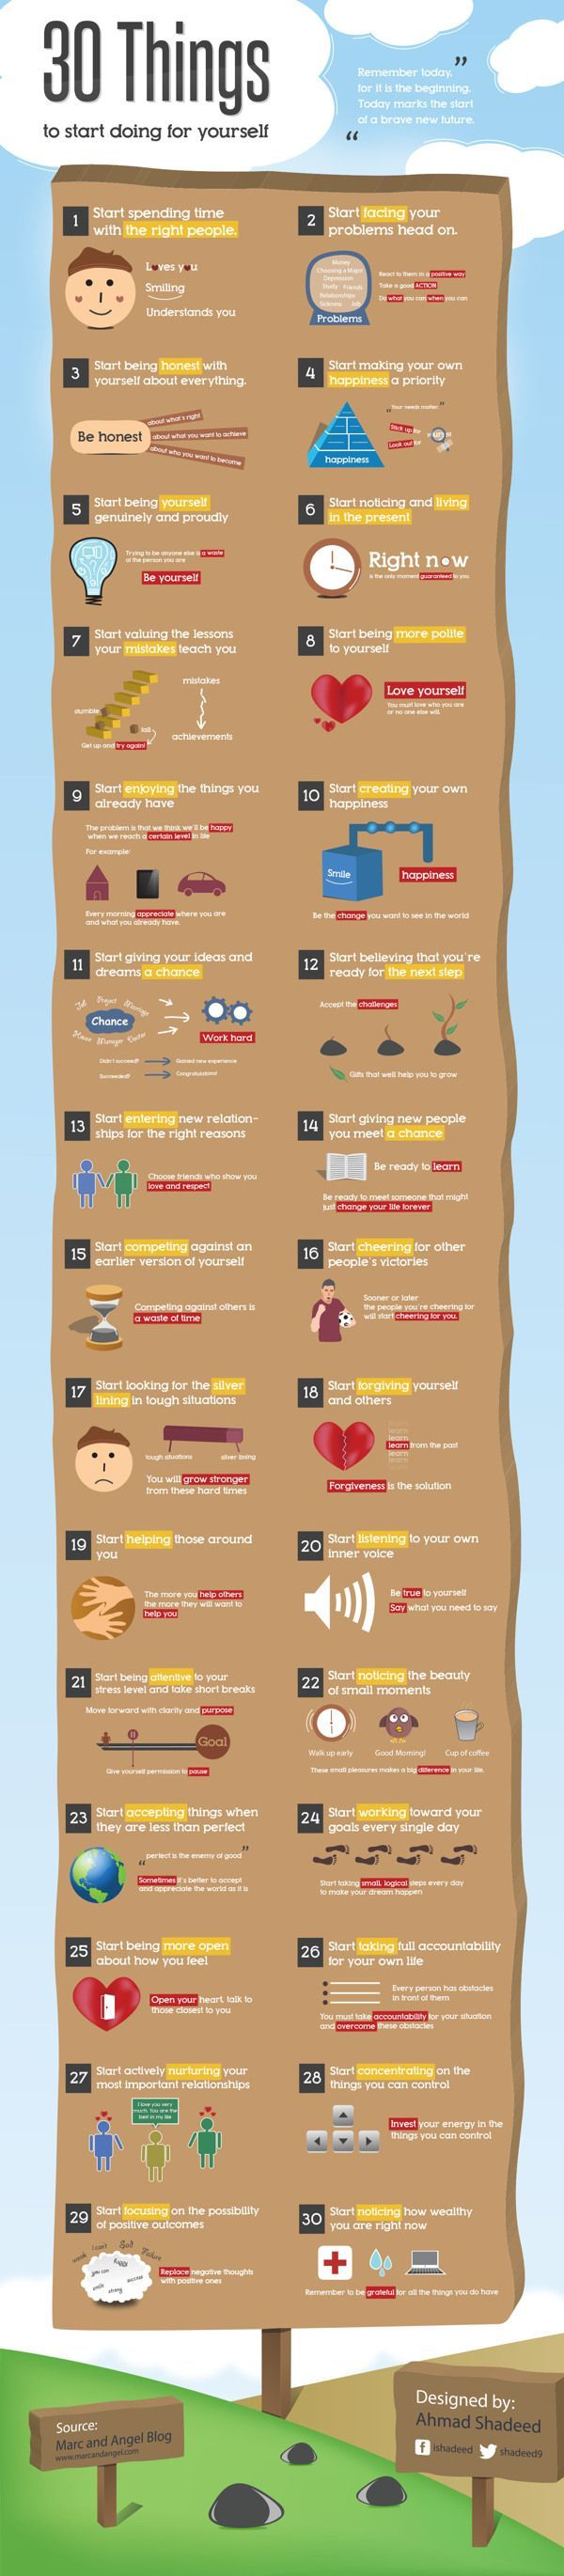 30 Things to do for Yourself. As moms we tend to neglect ourselves. Take care of yourself first and 29 other things to do for yourself today.